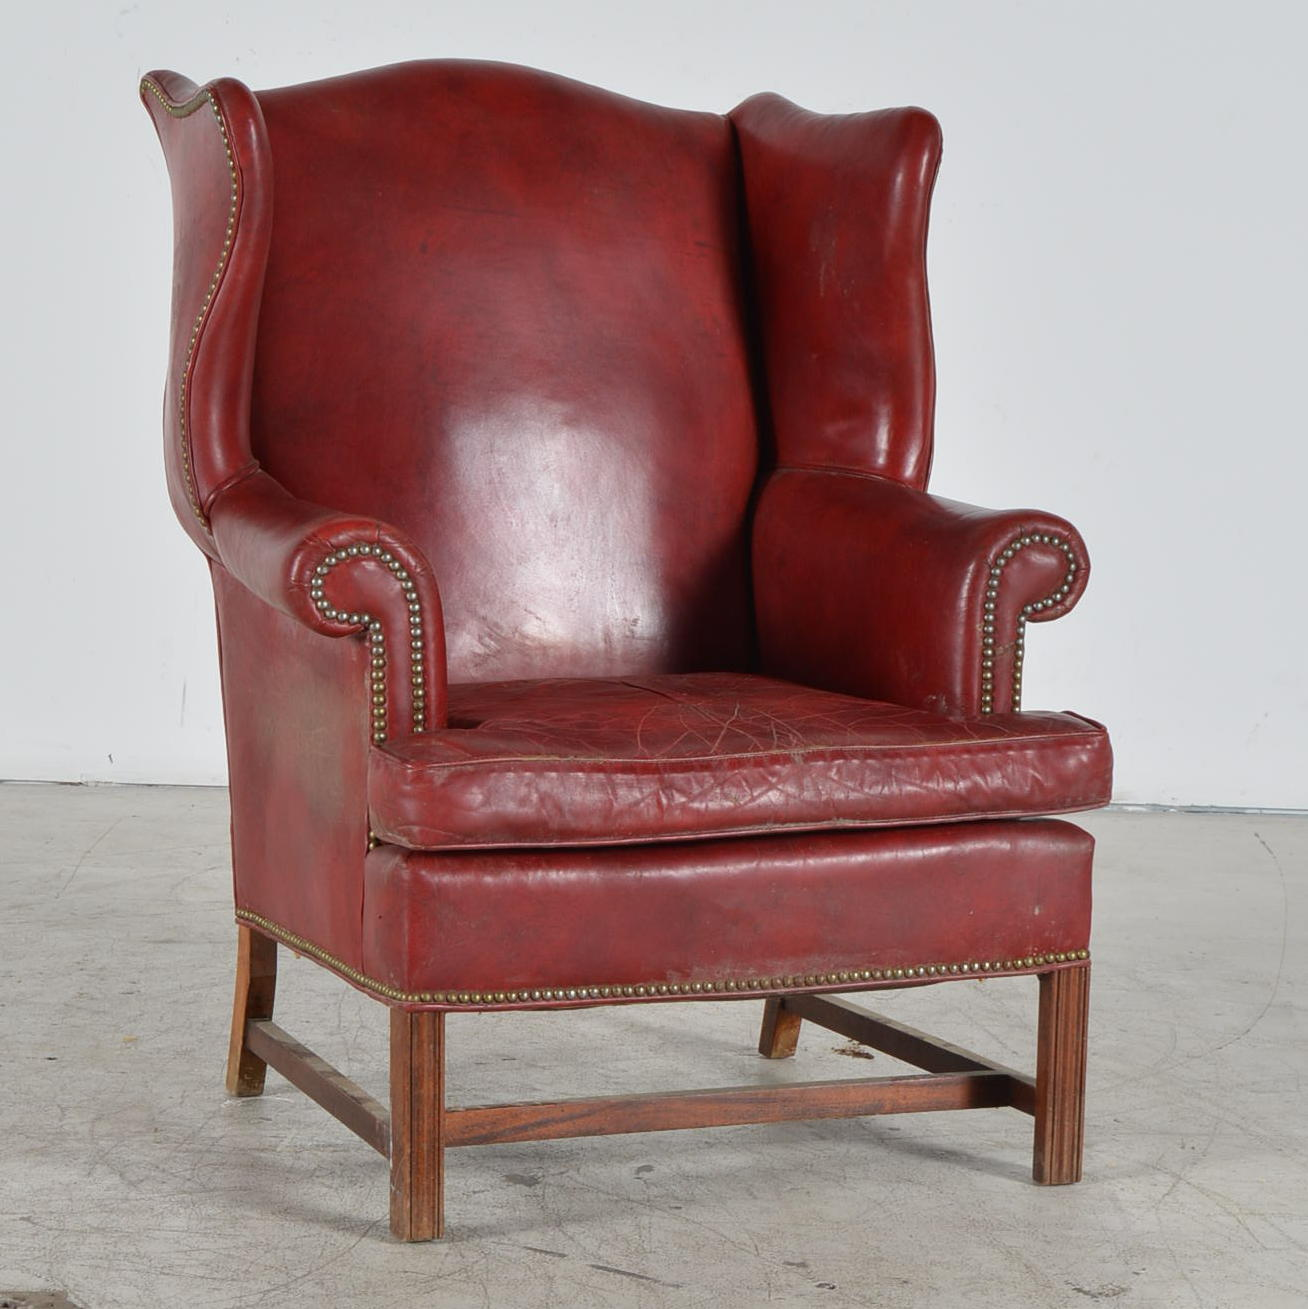 wingback rocking chair cape town tufted dining chairs sale old hickory tannery leather ebth